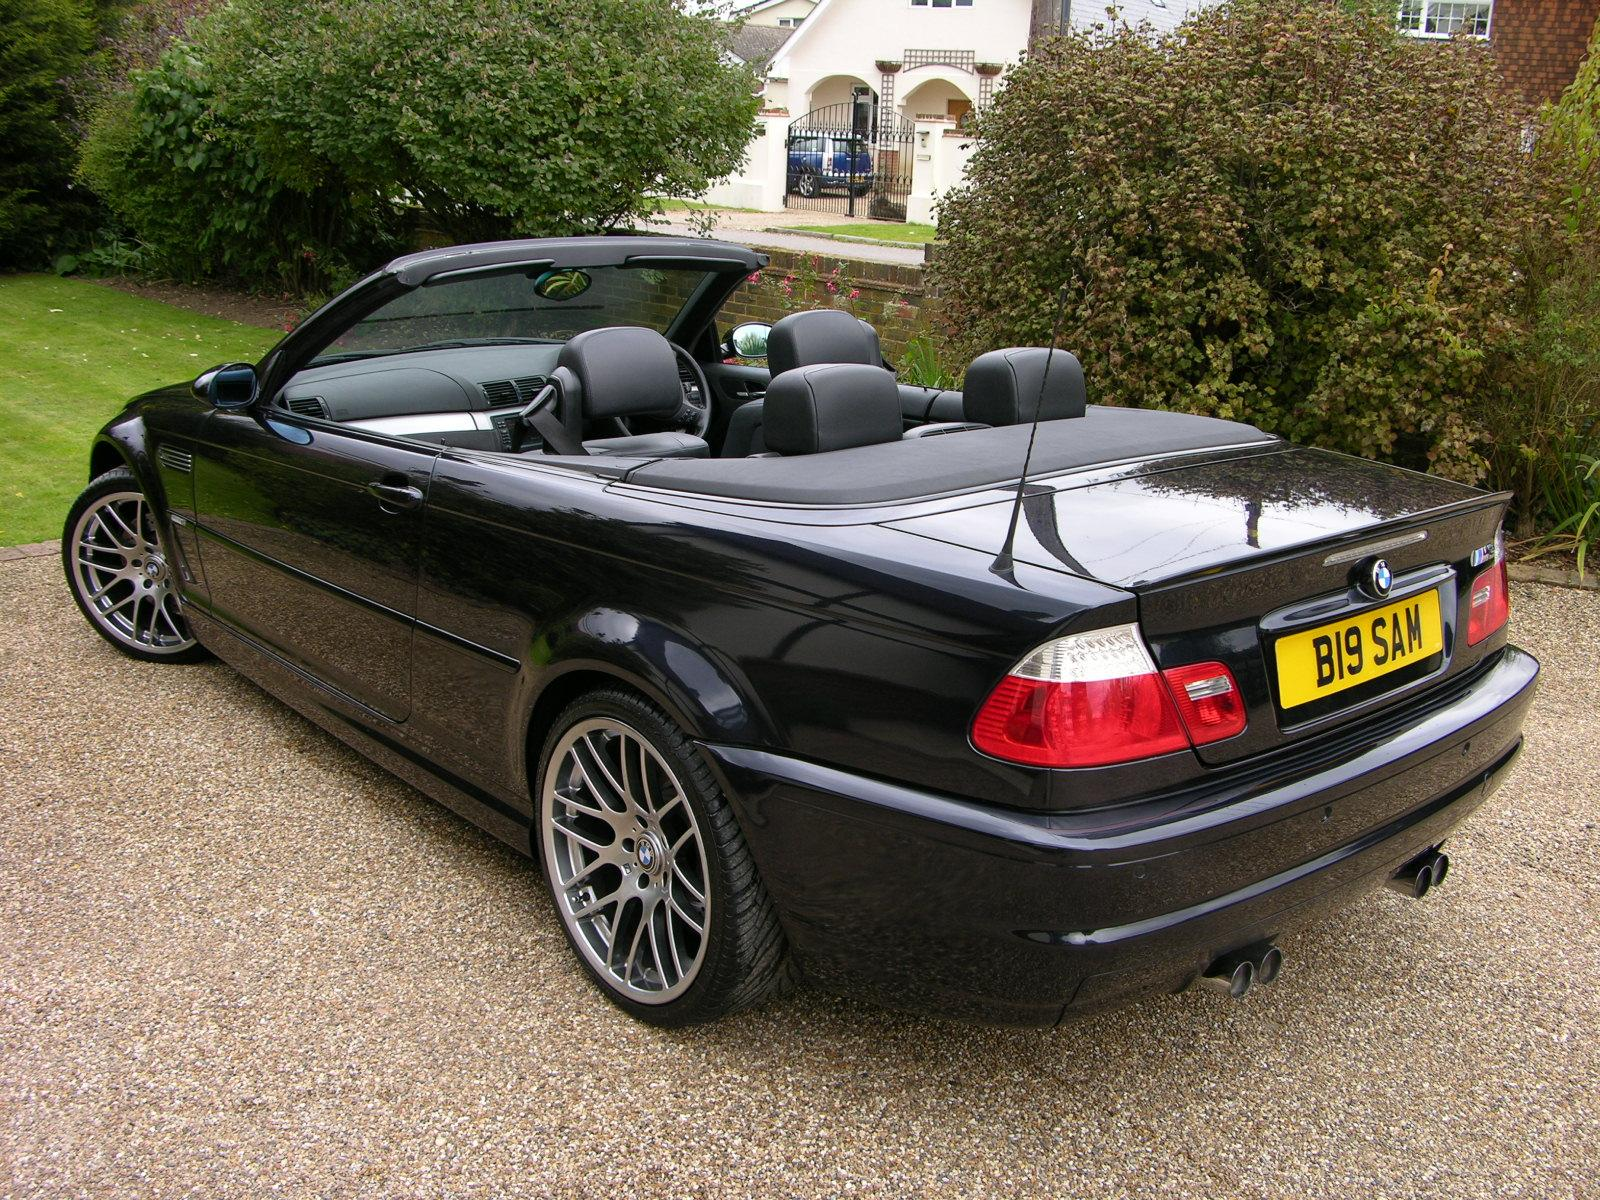 file bmw m3 smg convertible flickr the car spy 13 jpg wikimedia commons. Black Bedroom Furniture Sets. Home Design Ideas